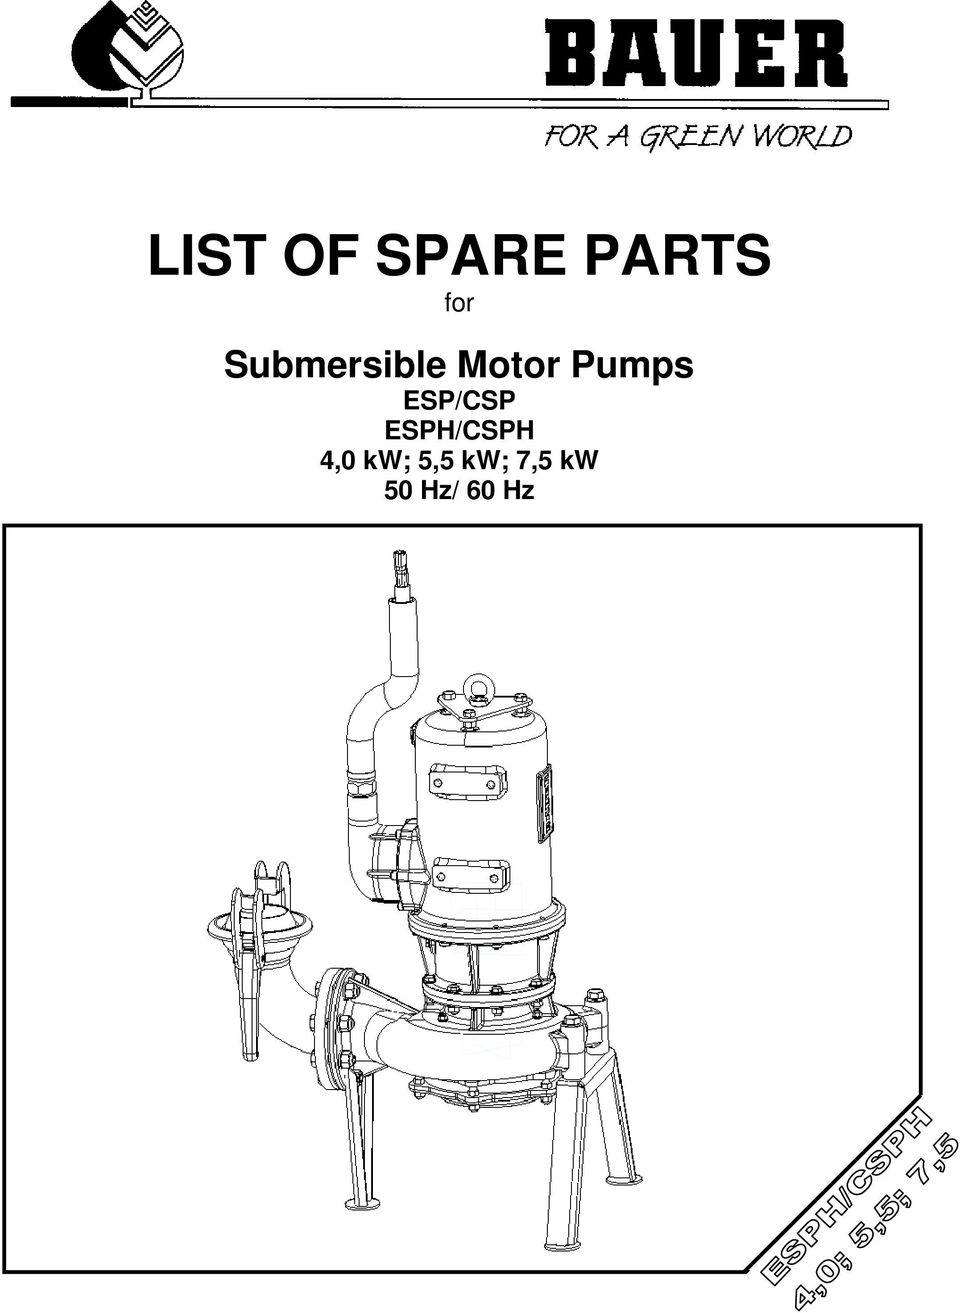 Pool Pump 230 Volt Wiring Diagram Franklin Electric Submersible Pump